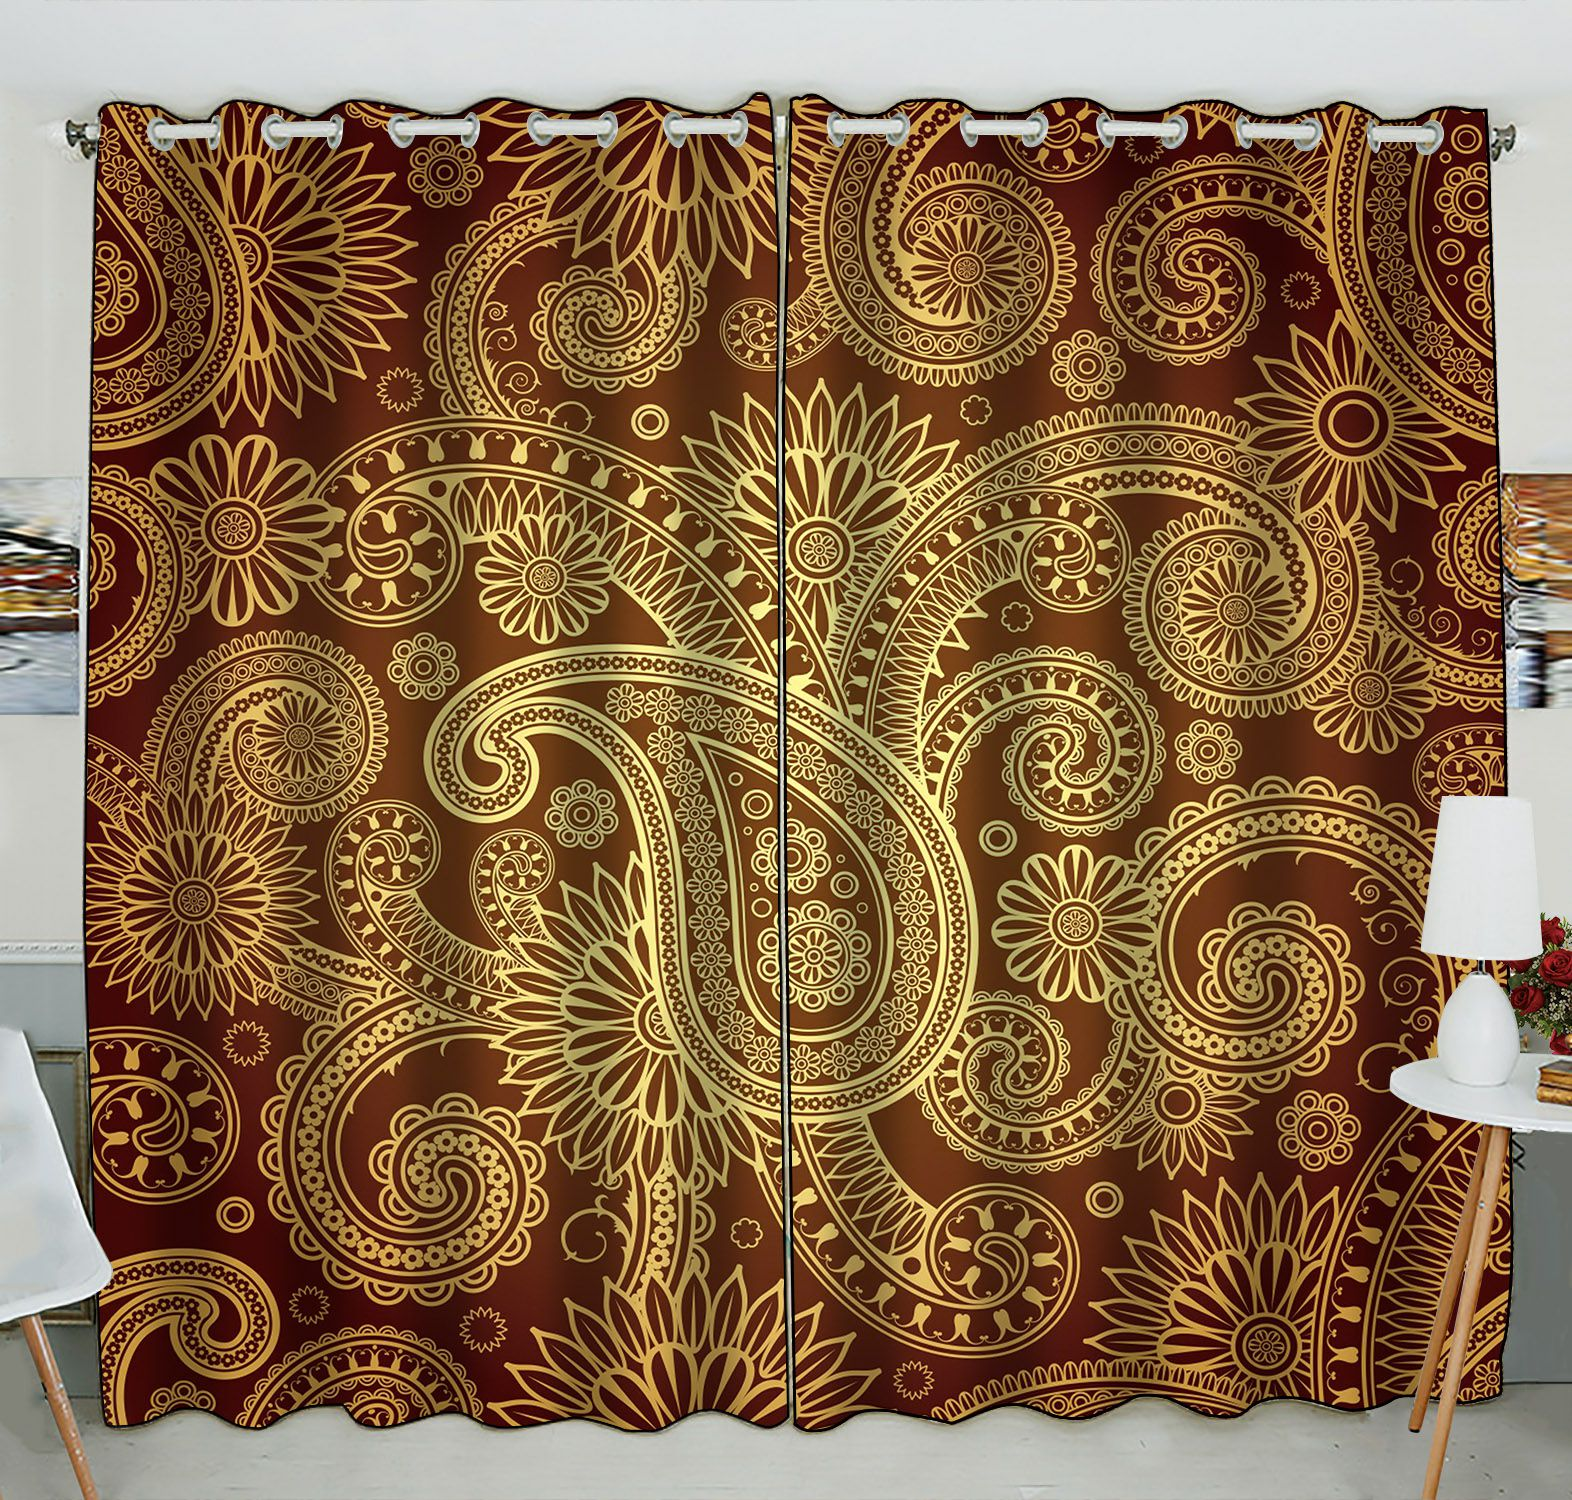 ZKGK Damask Pattern Window Curtain Drapery/Panels/Treatment For Living Room Bedroom Kids Rooms 52x84 inches Two Panel